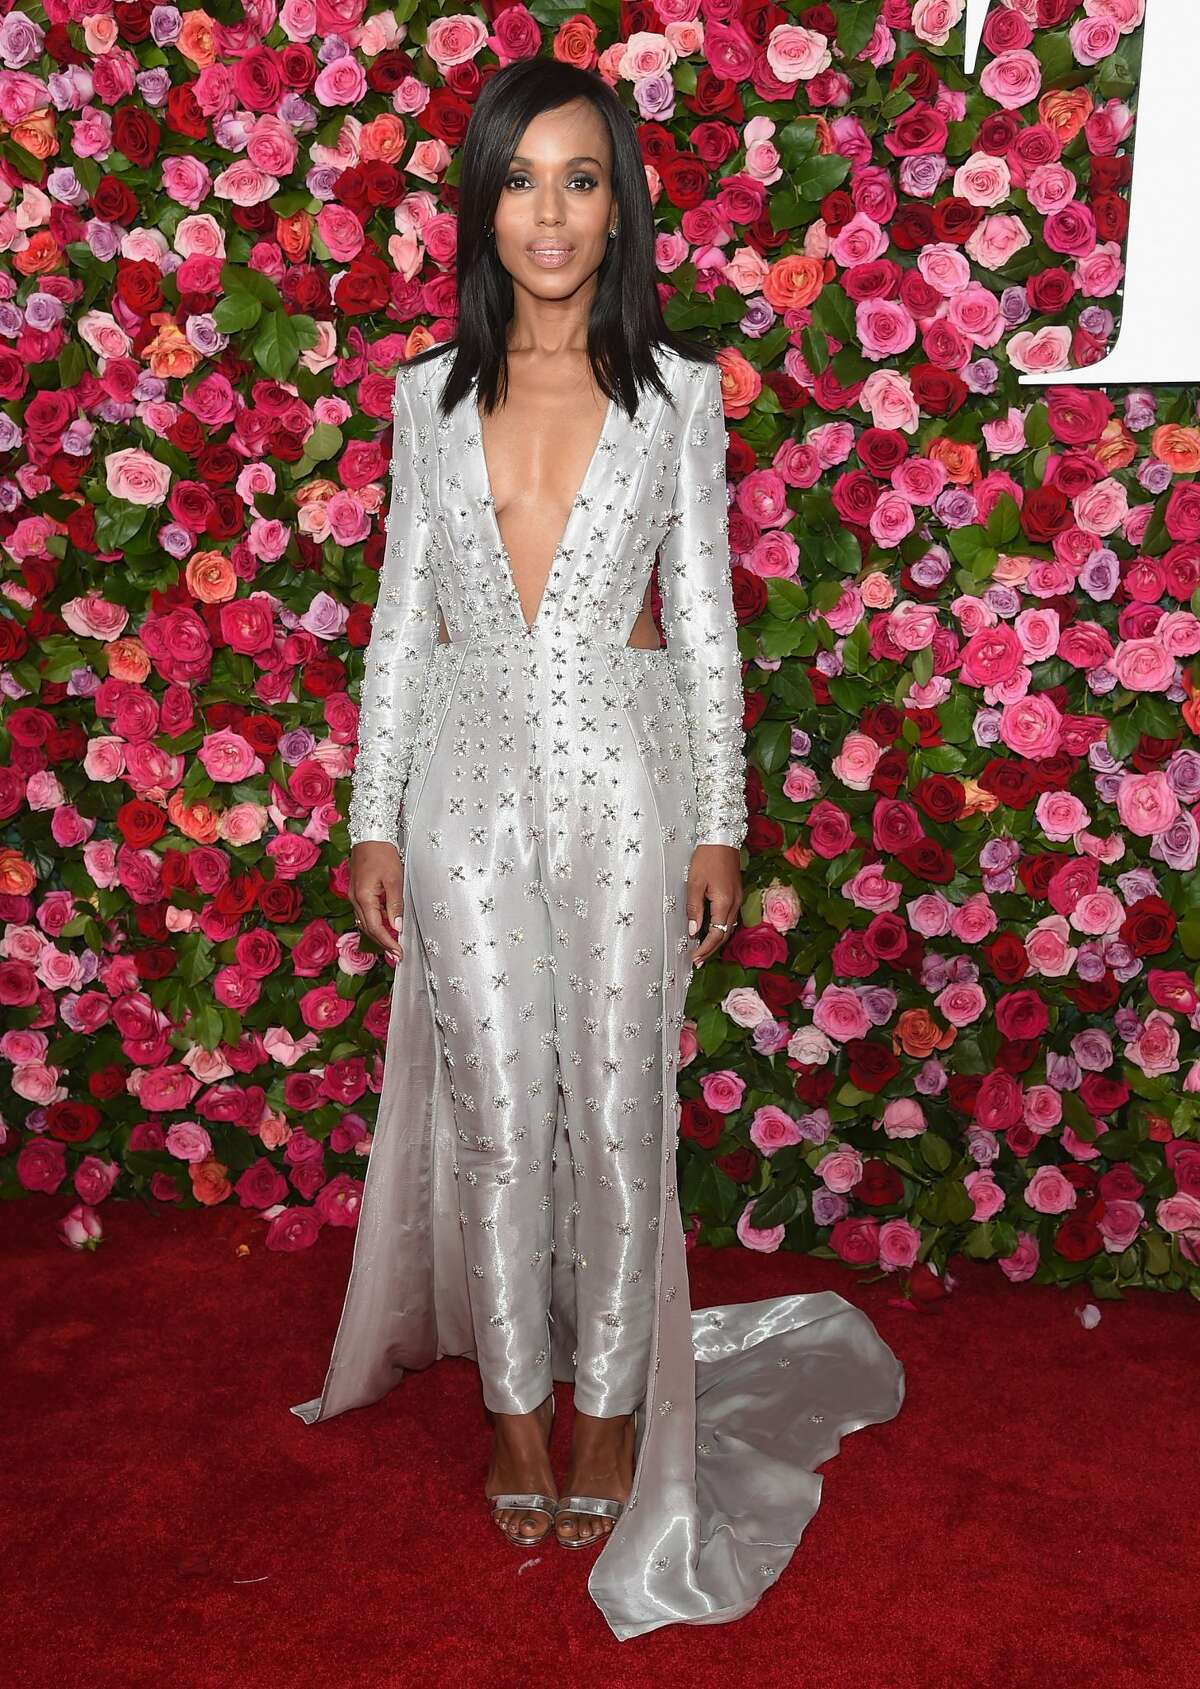 Worst: Kerry Washington, your outfit looks like fishing waders dressed up with sleeves and a train.